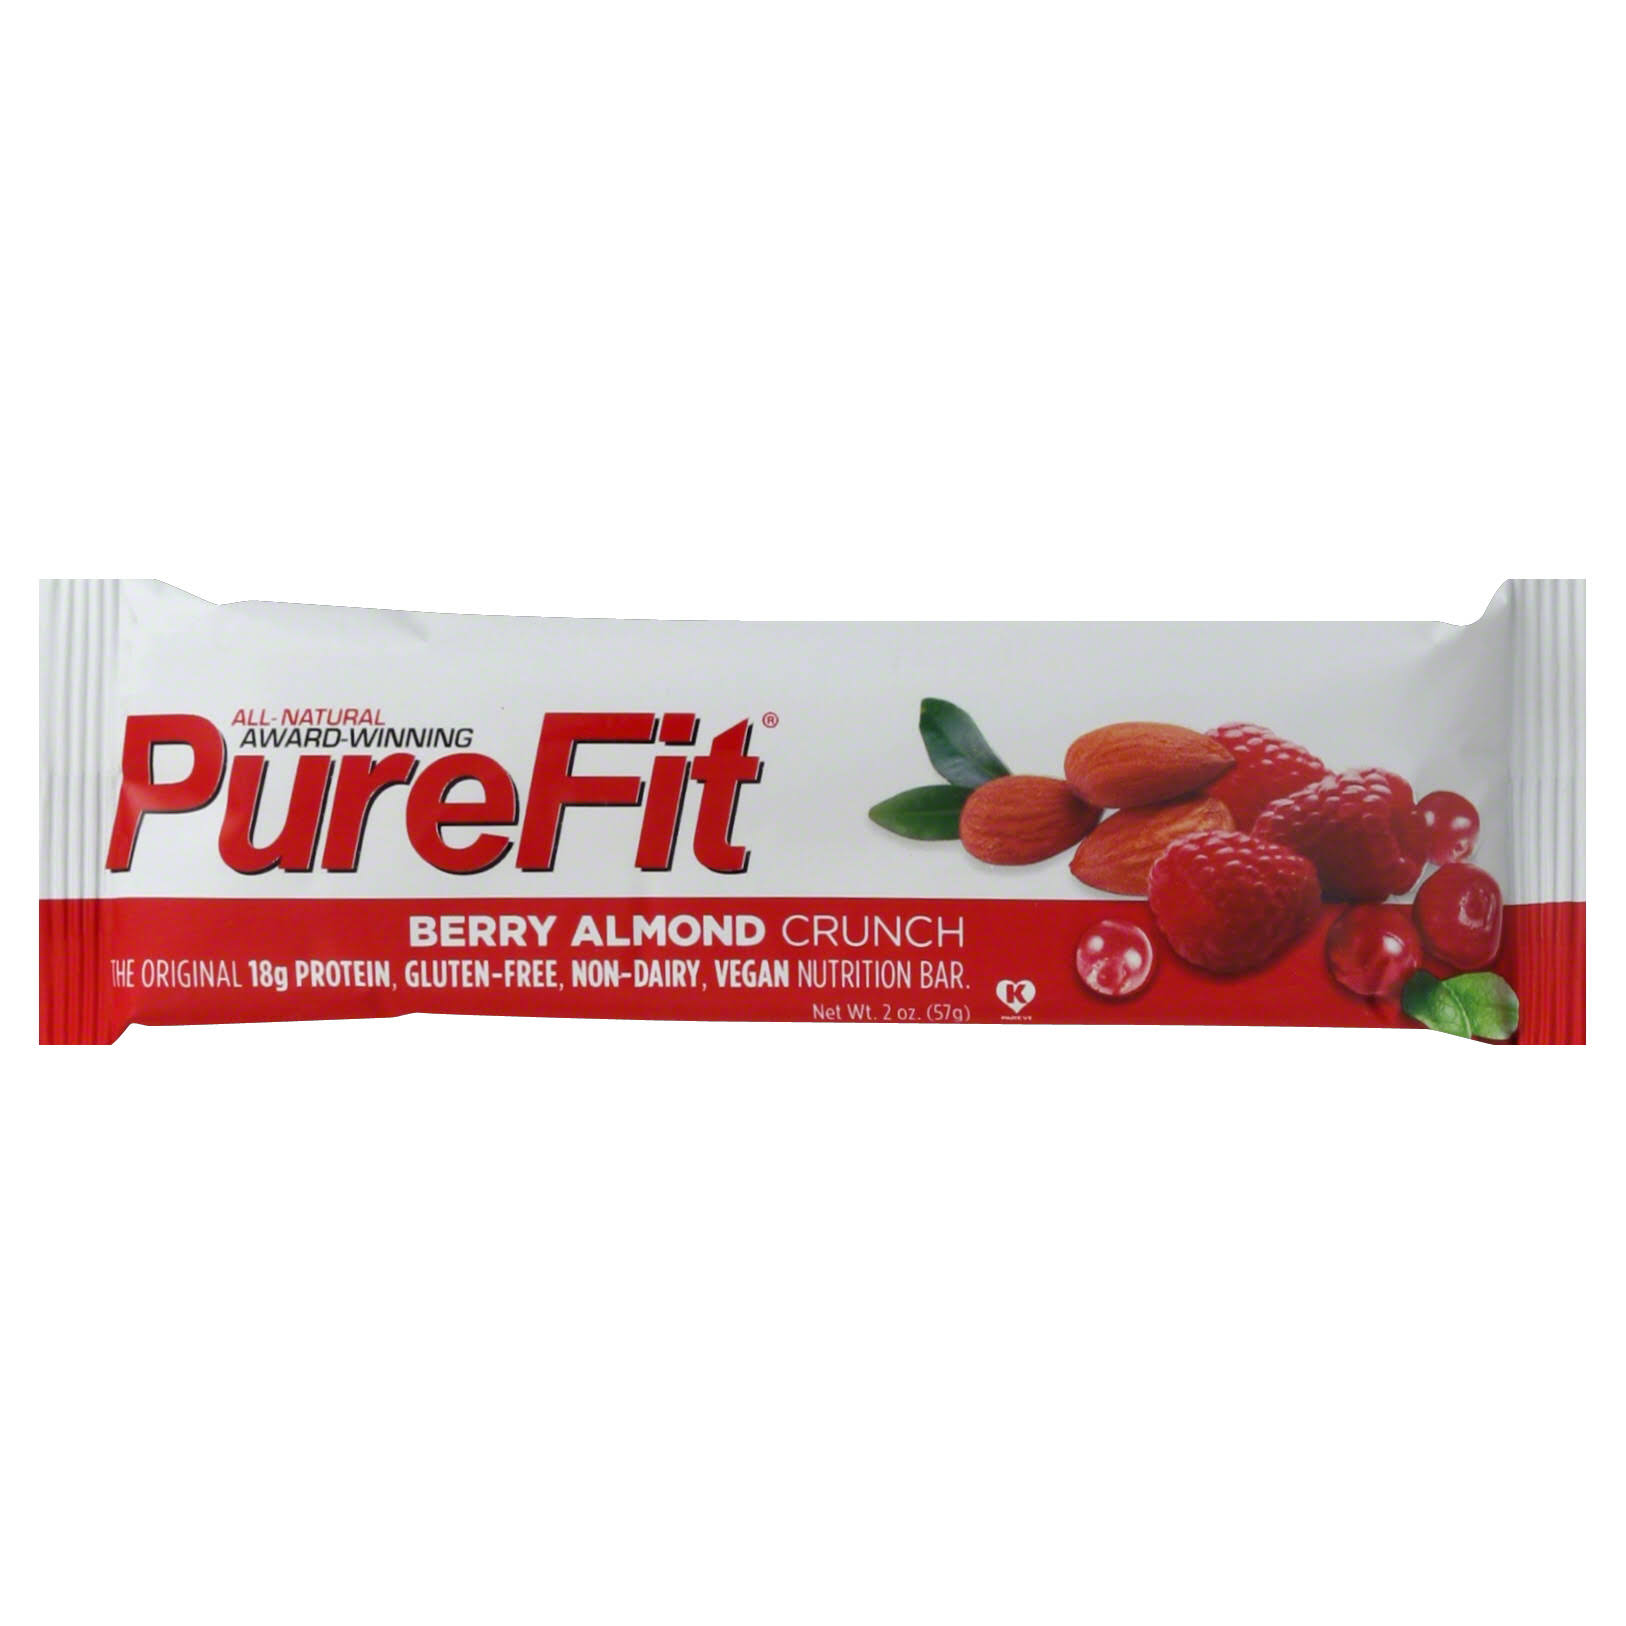 PureFit Nutrition Bar, Berry Almond Crunch - 2 oz